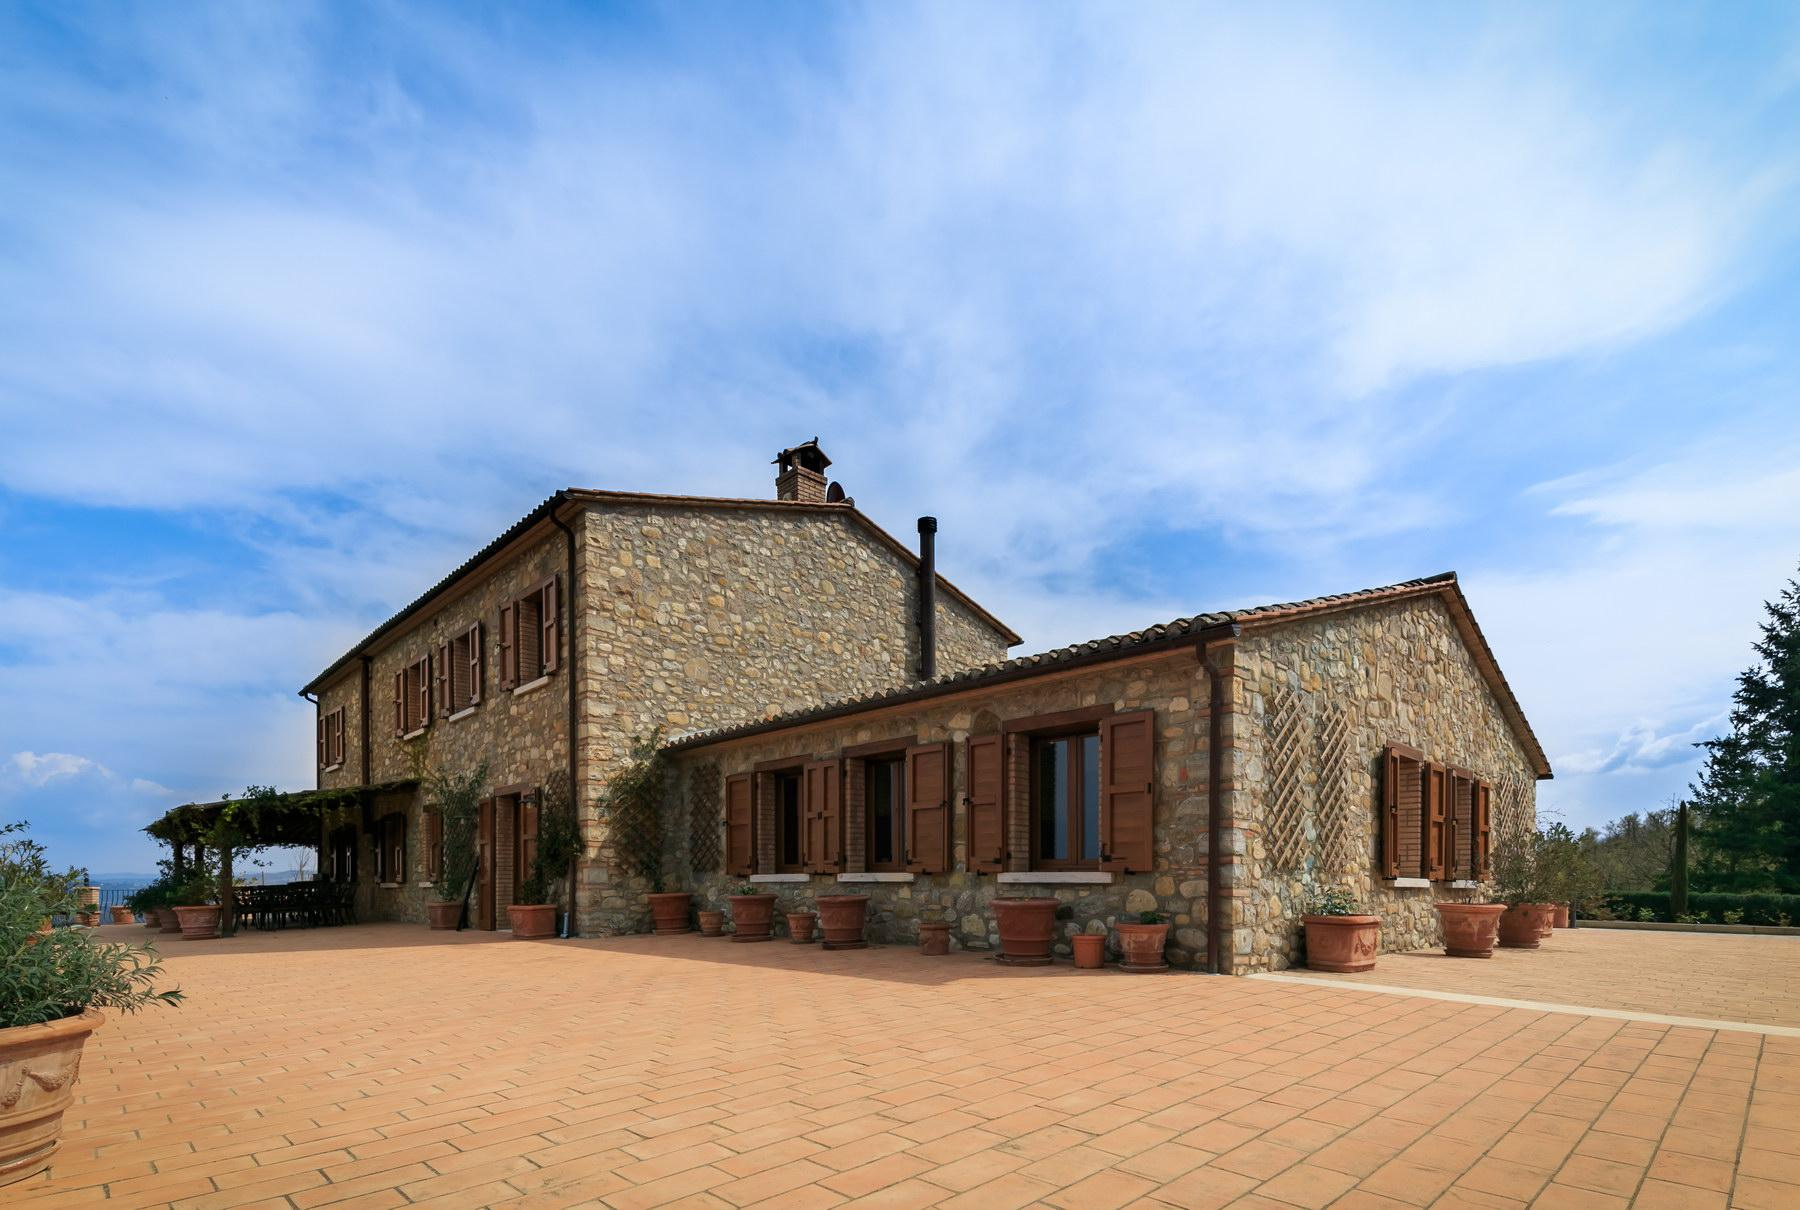 Outstanding property nestled on the umbrian hills - 12